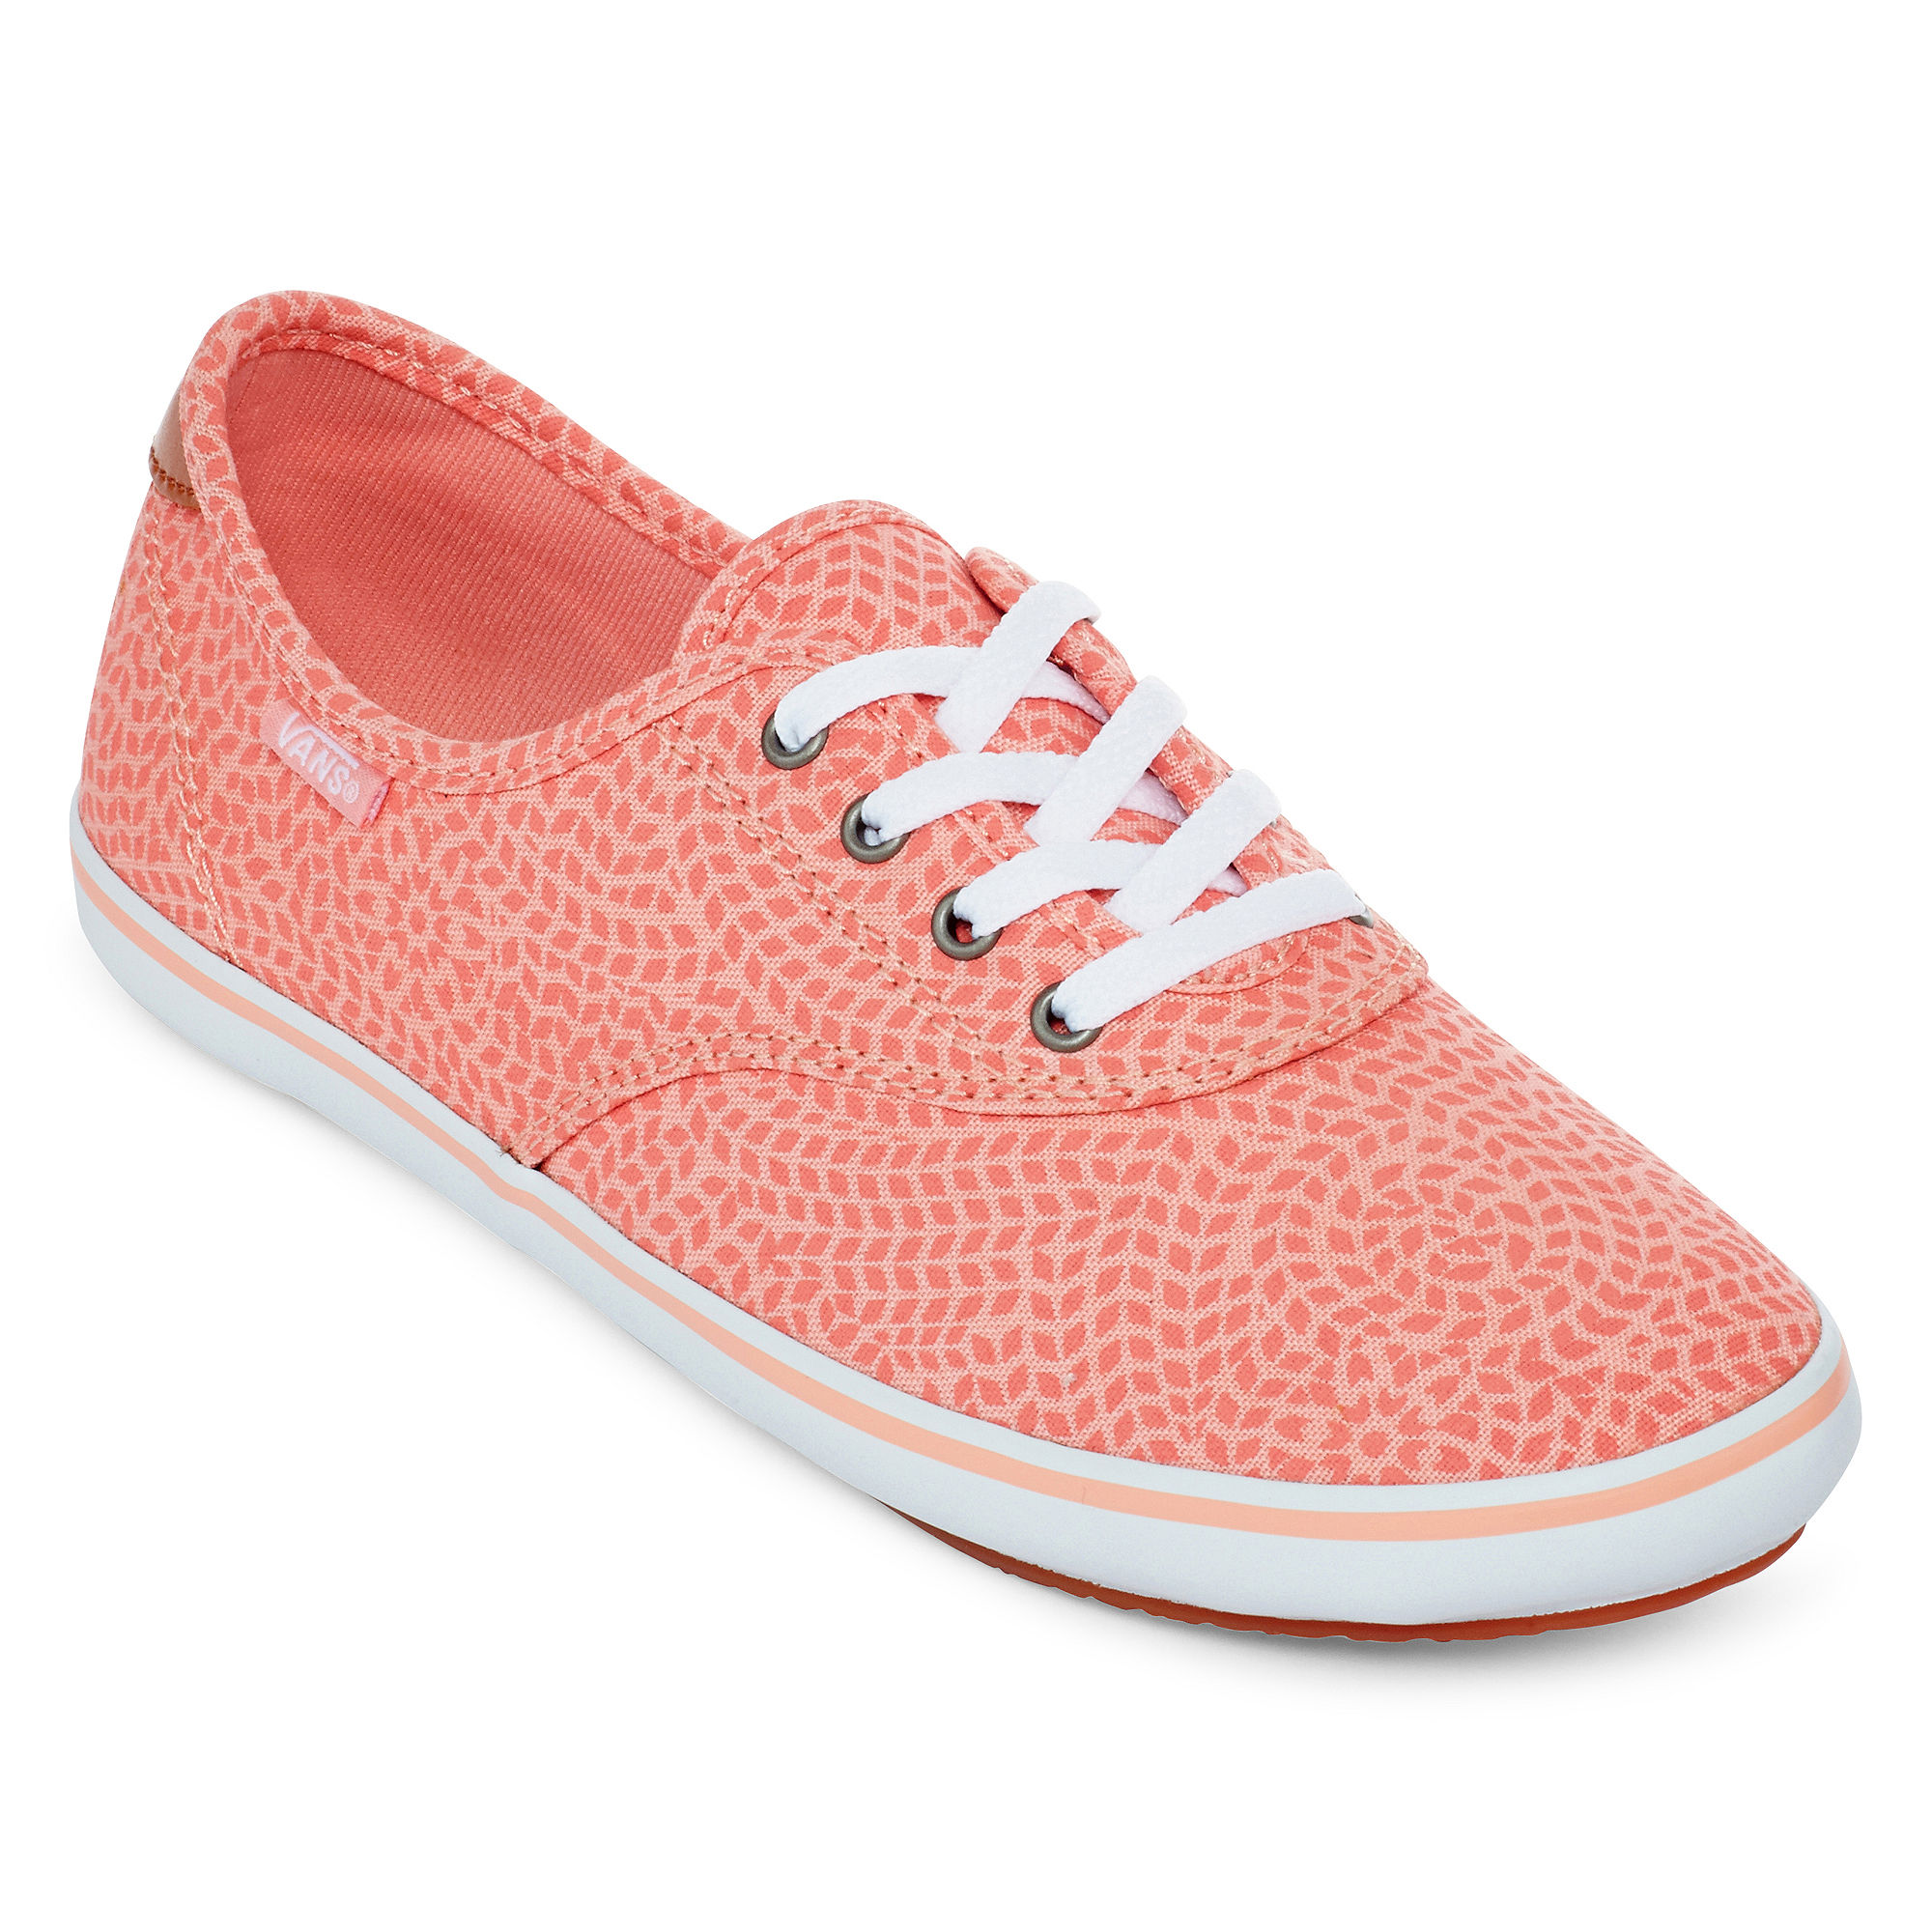 e434d0ca359 UPC 887867014803 product image for Vans Huntley Womens Sneakers